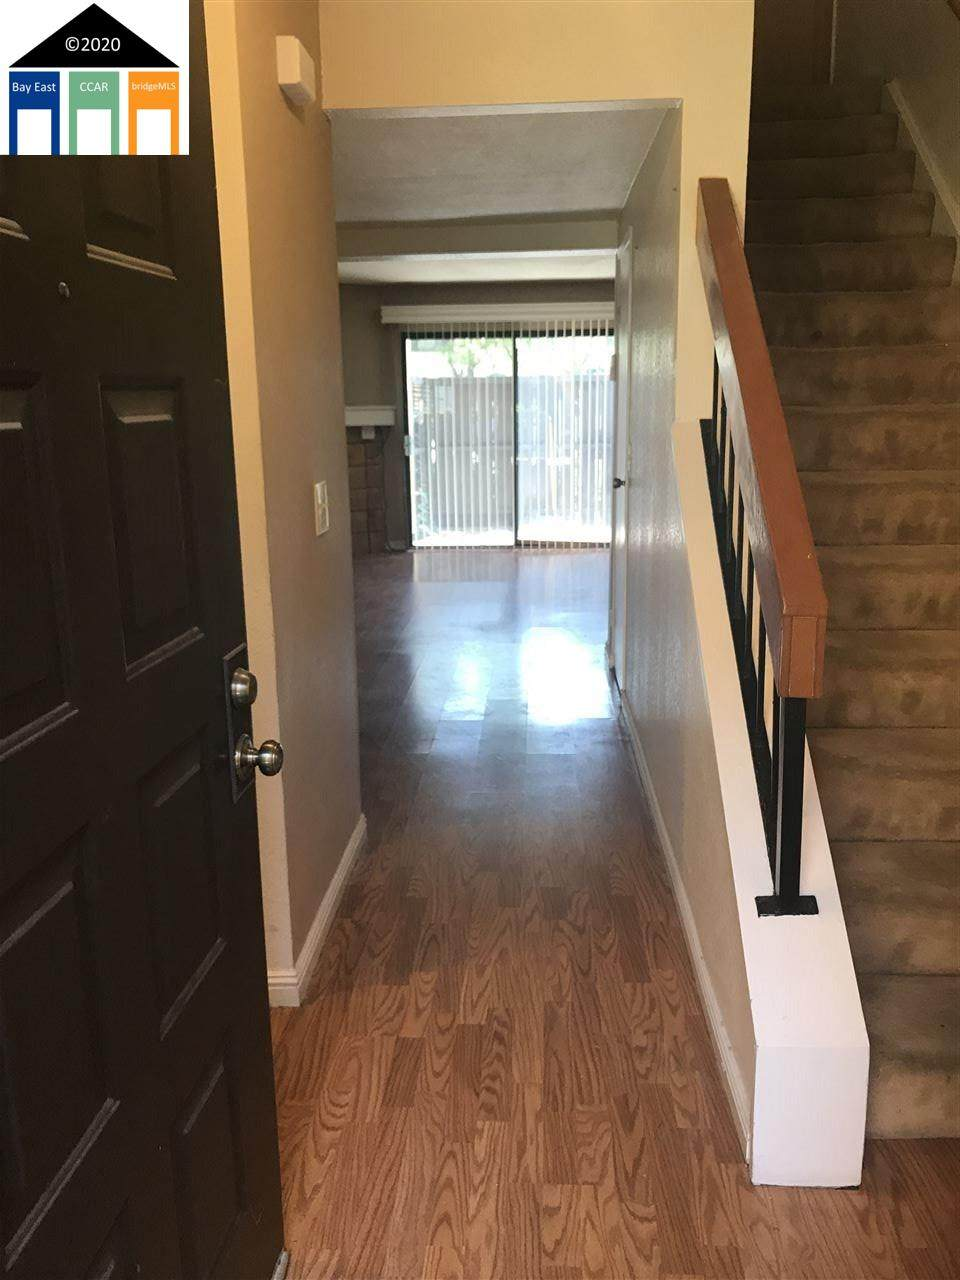 6293 Joaquin Murieta Ave D - Photo 1